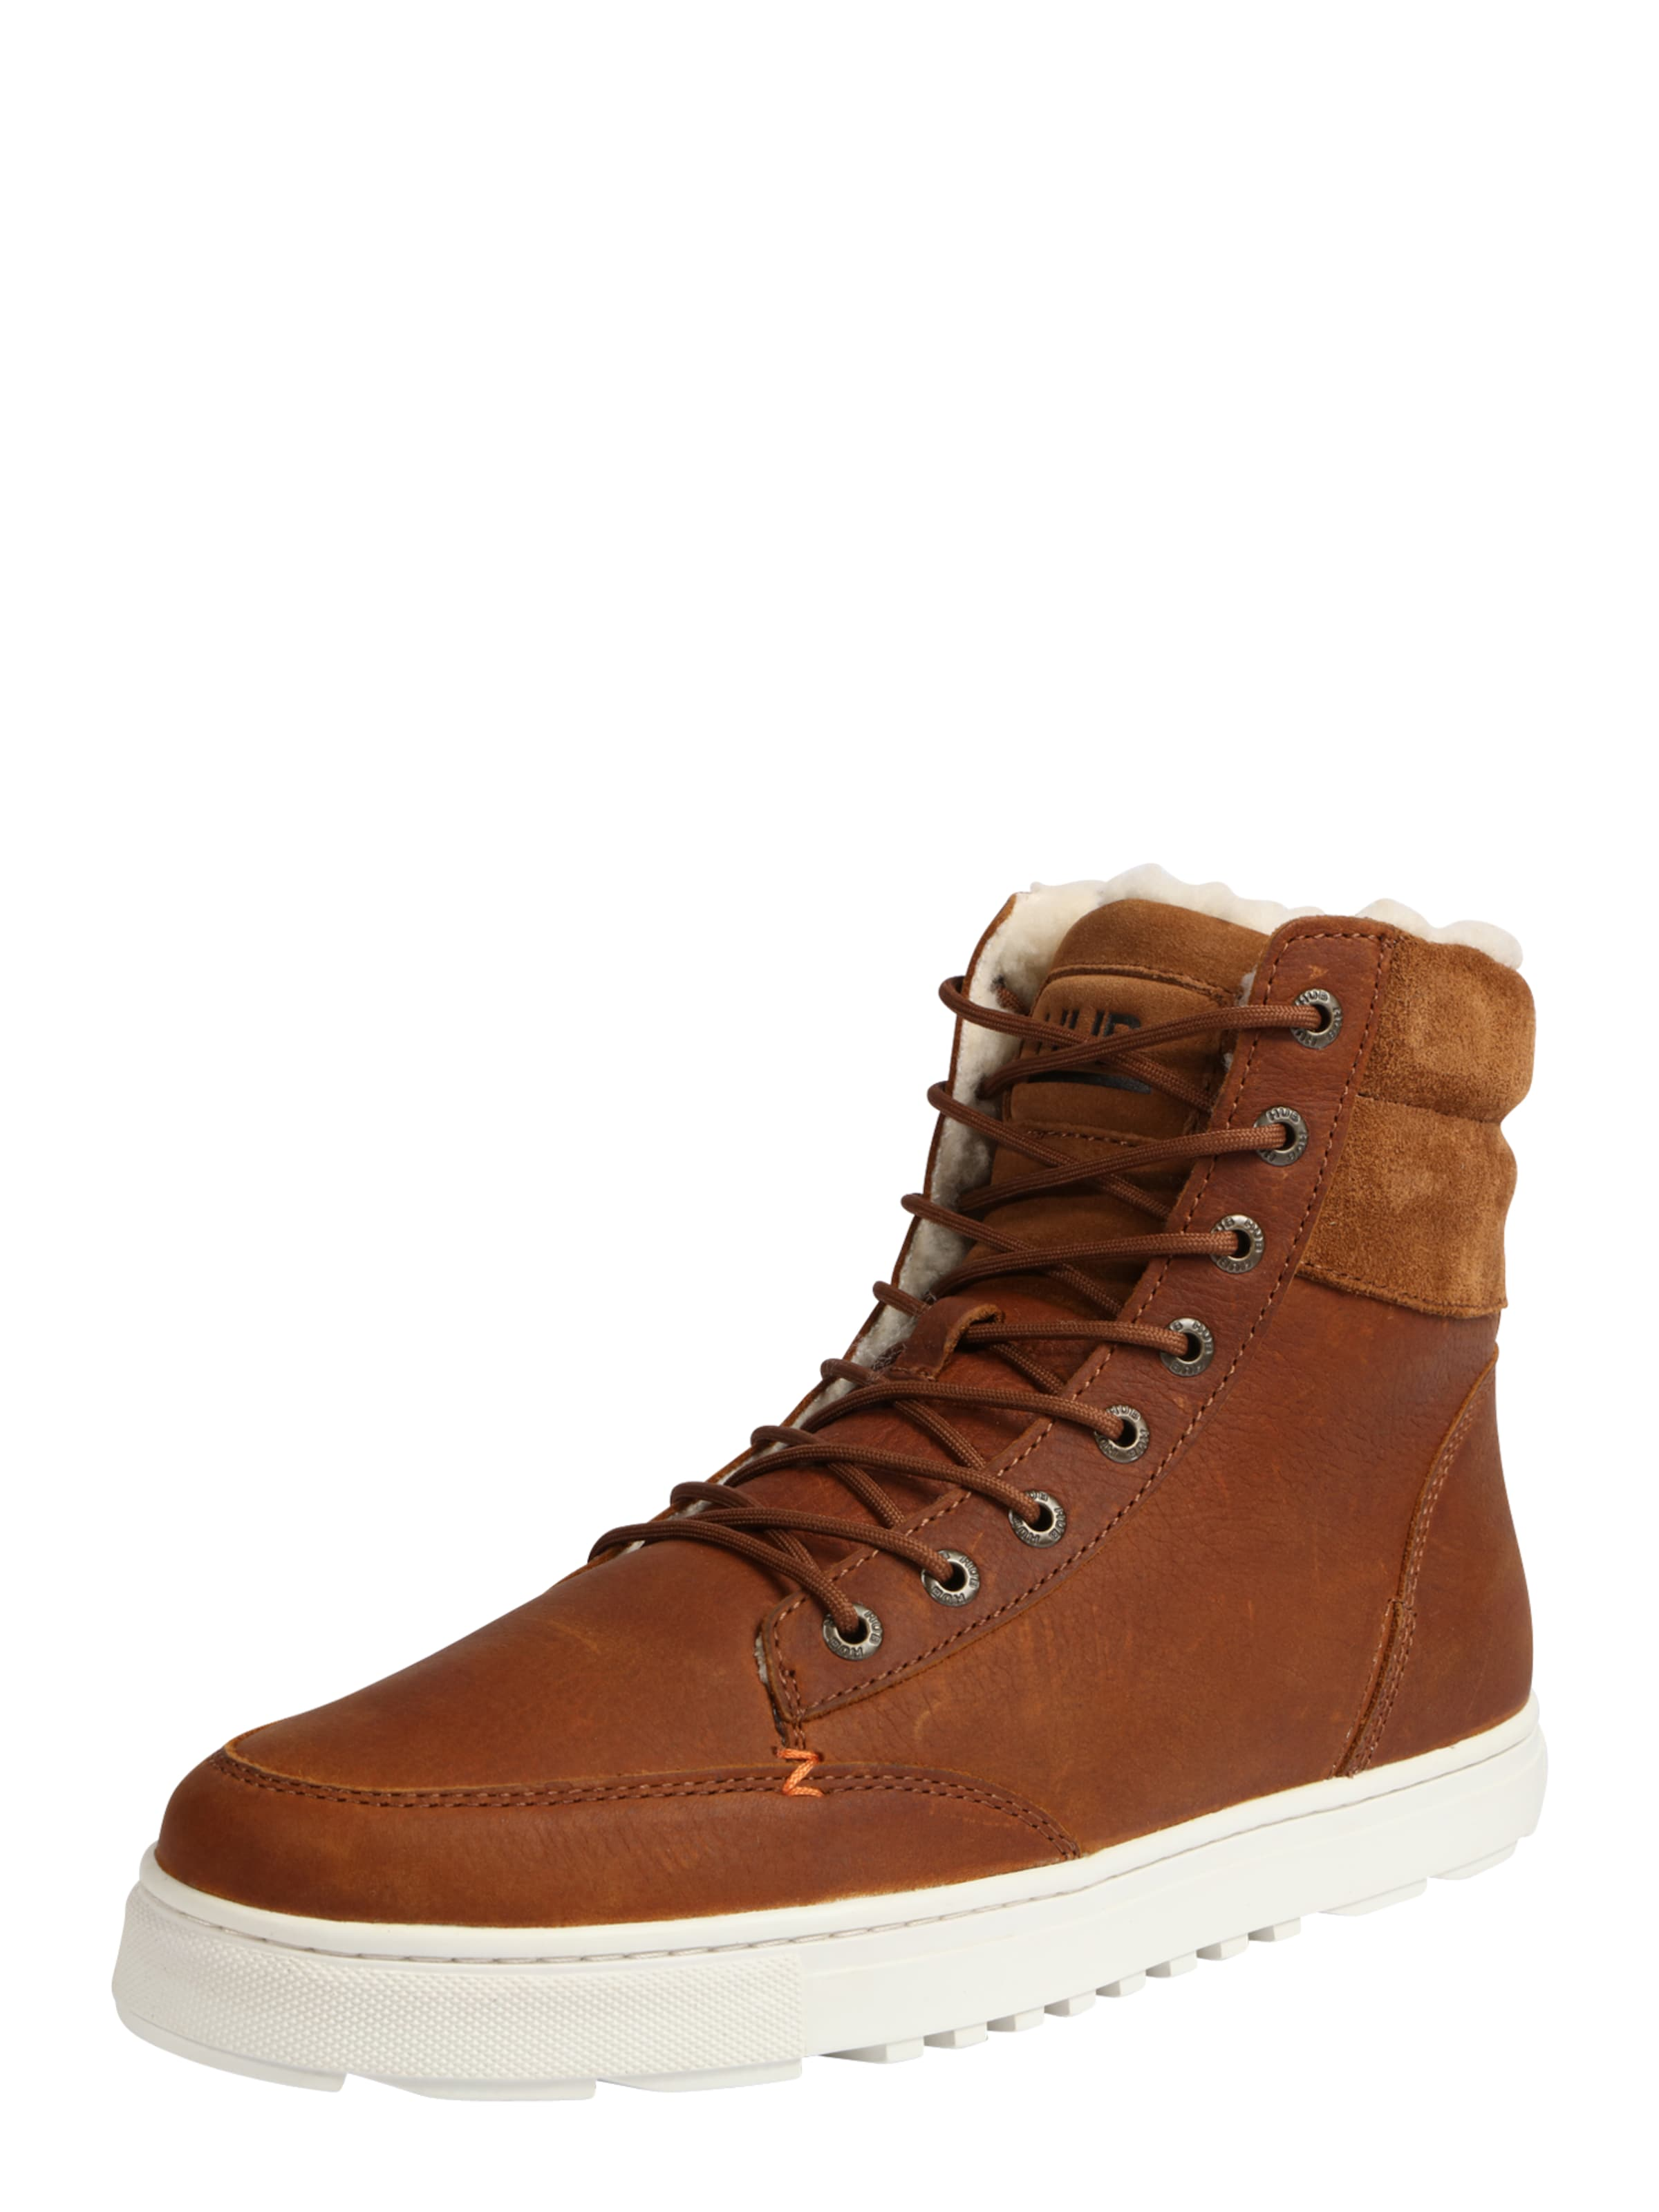 HUB High-Top Sneaker  Dublin L30 Merlins